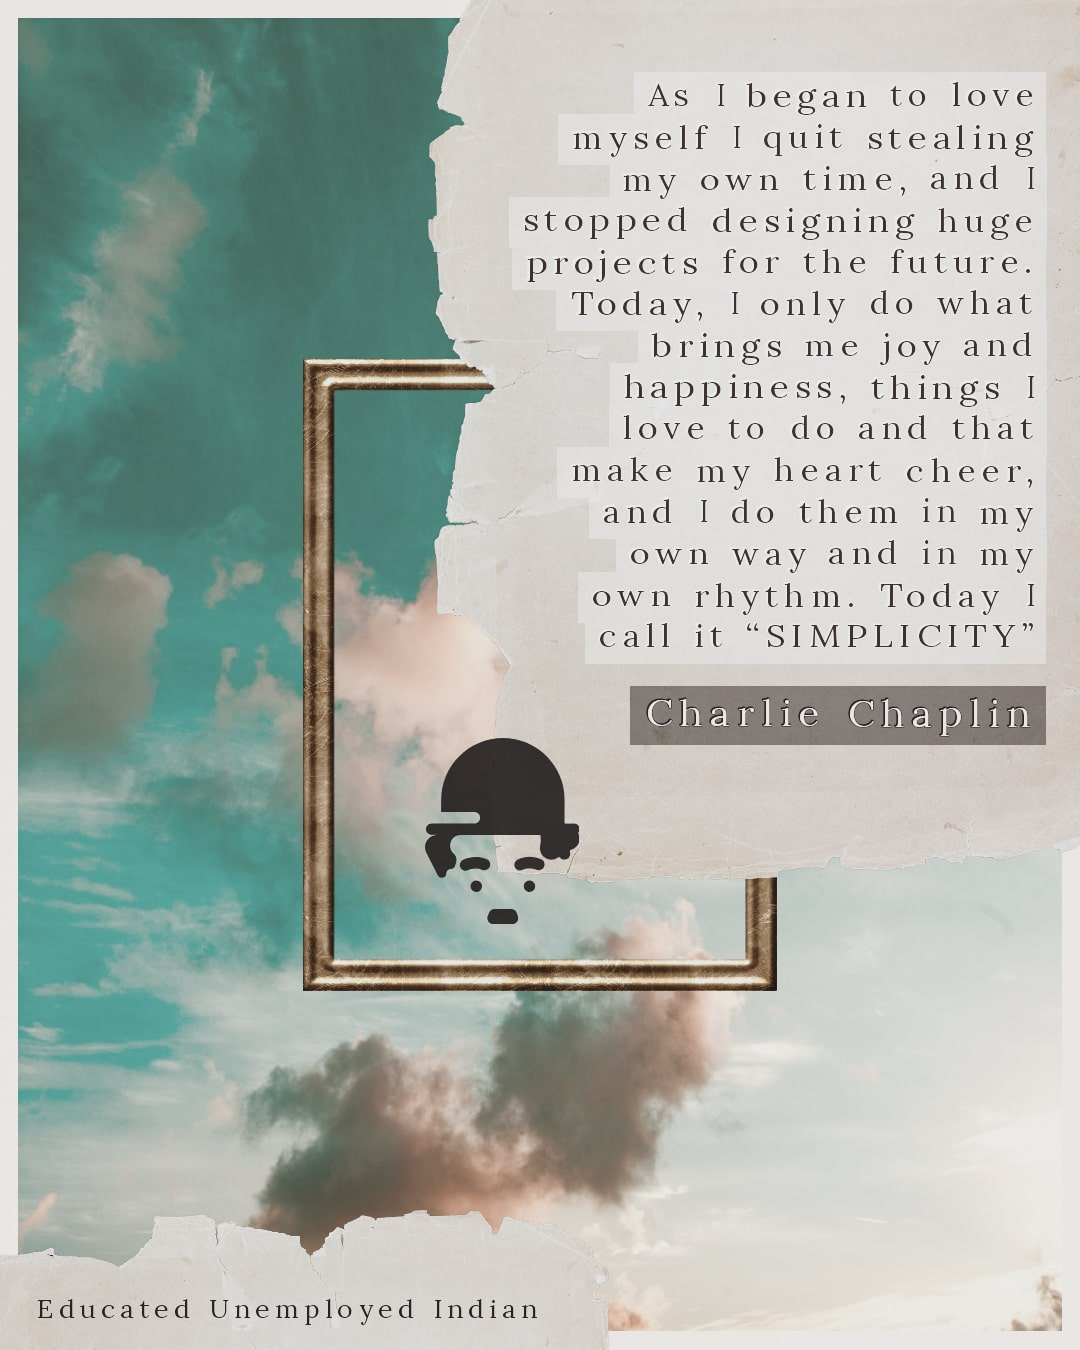 Charlie Chaplin Quote on Simplicity-min